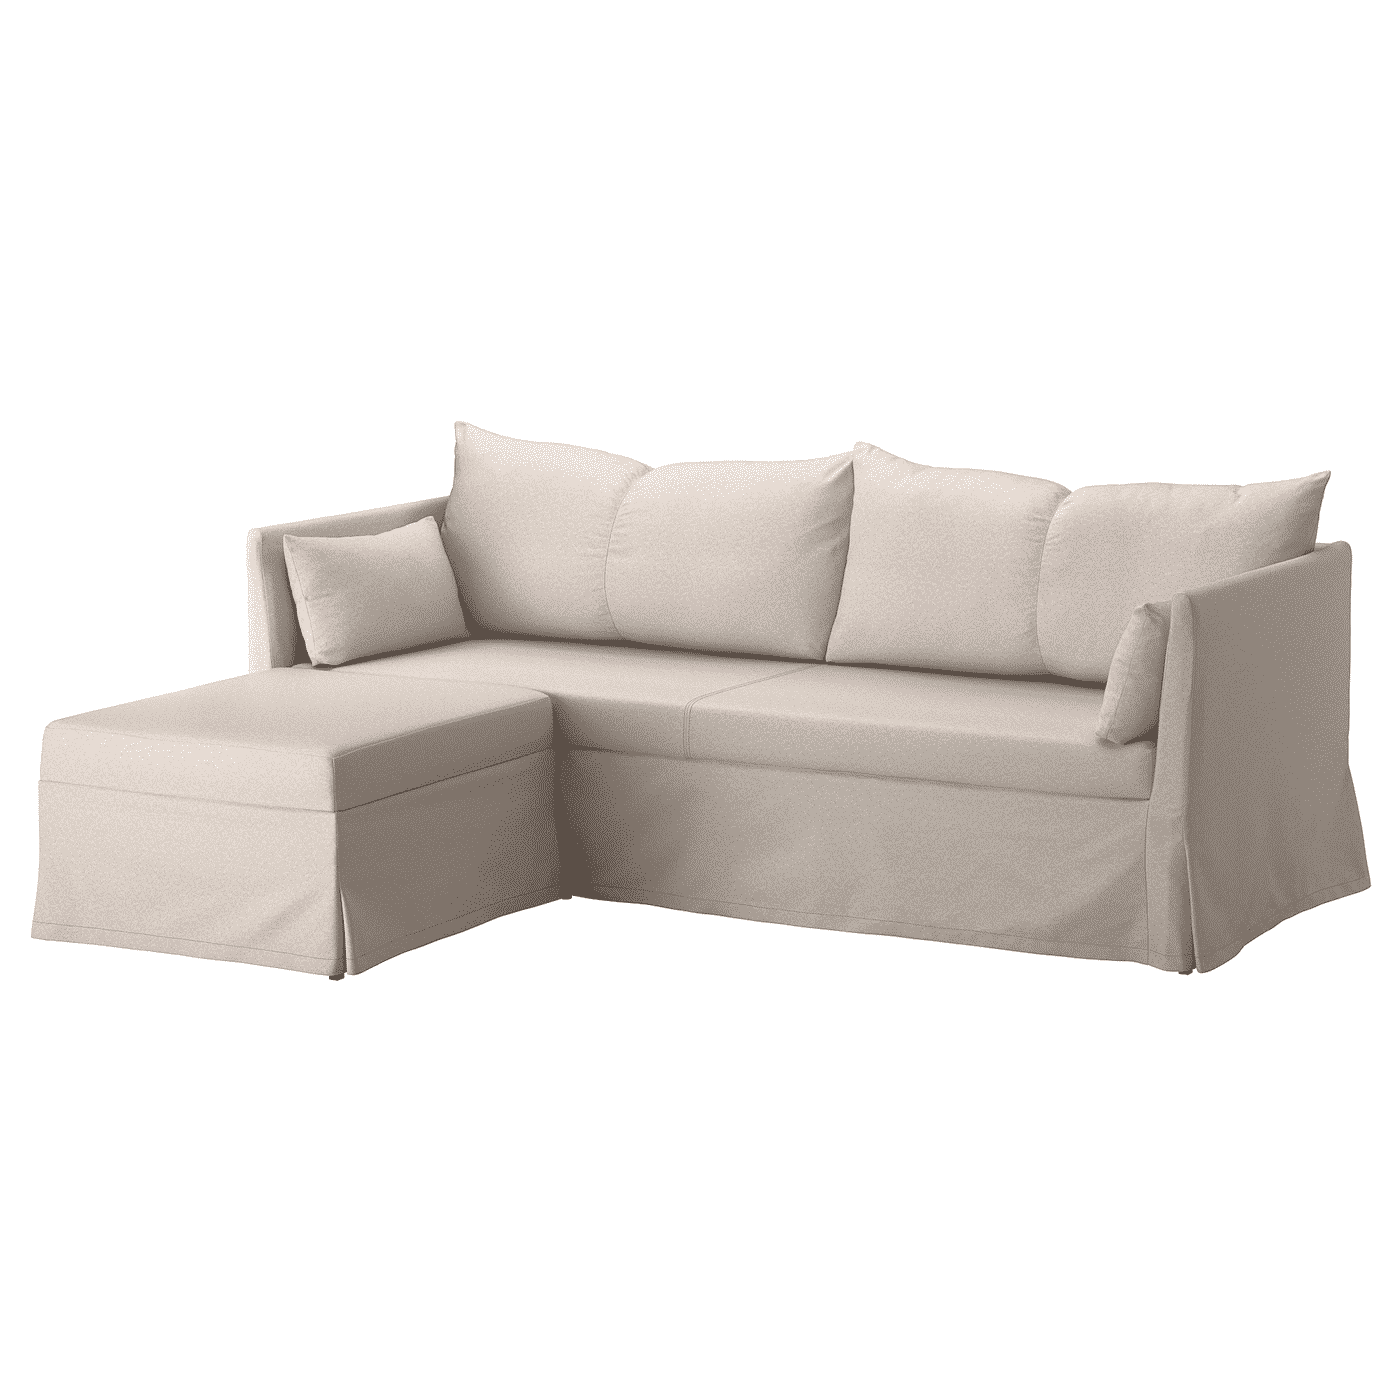 SANDBACKEN Sleeper Sectional